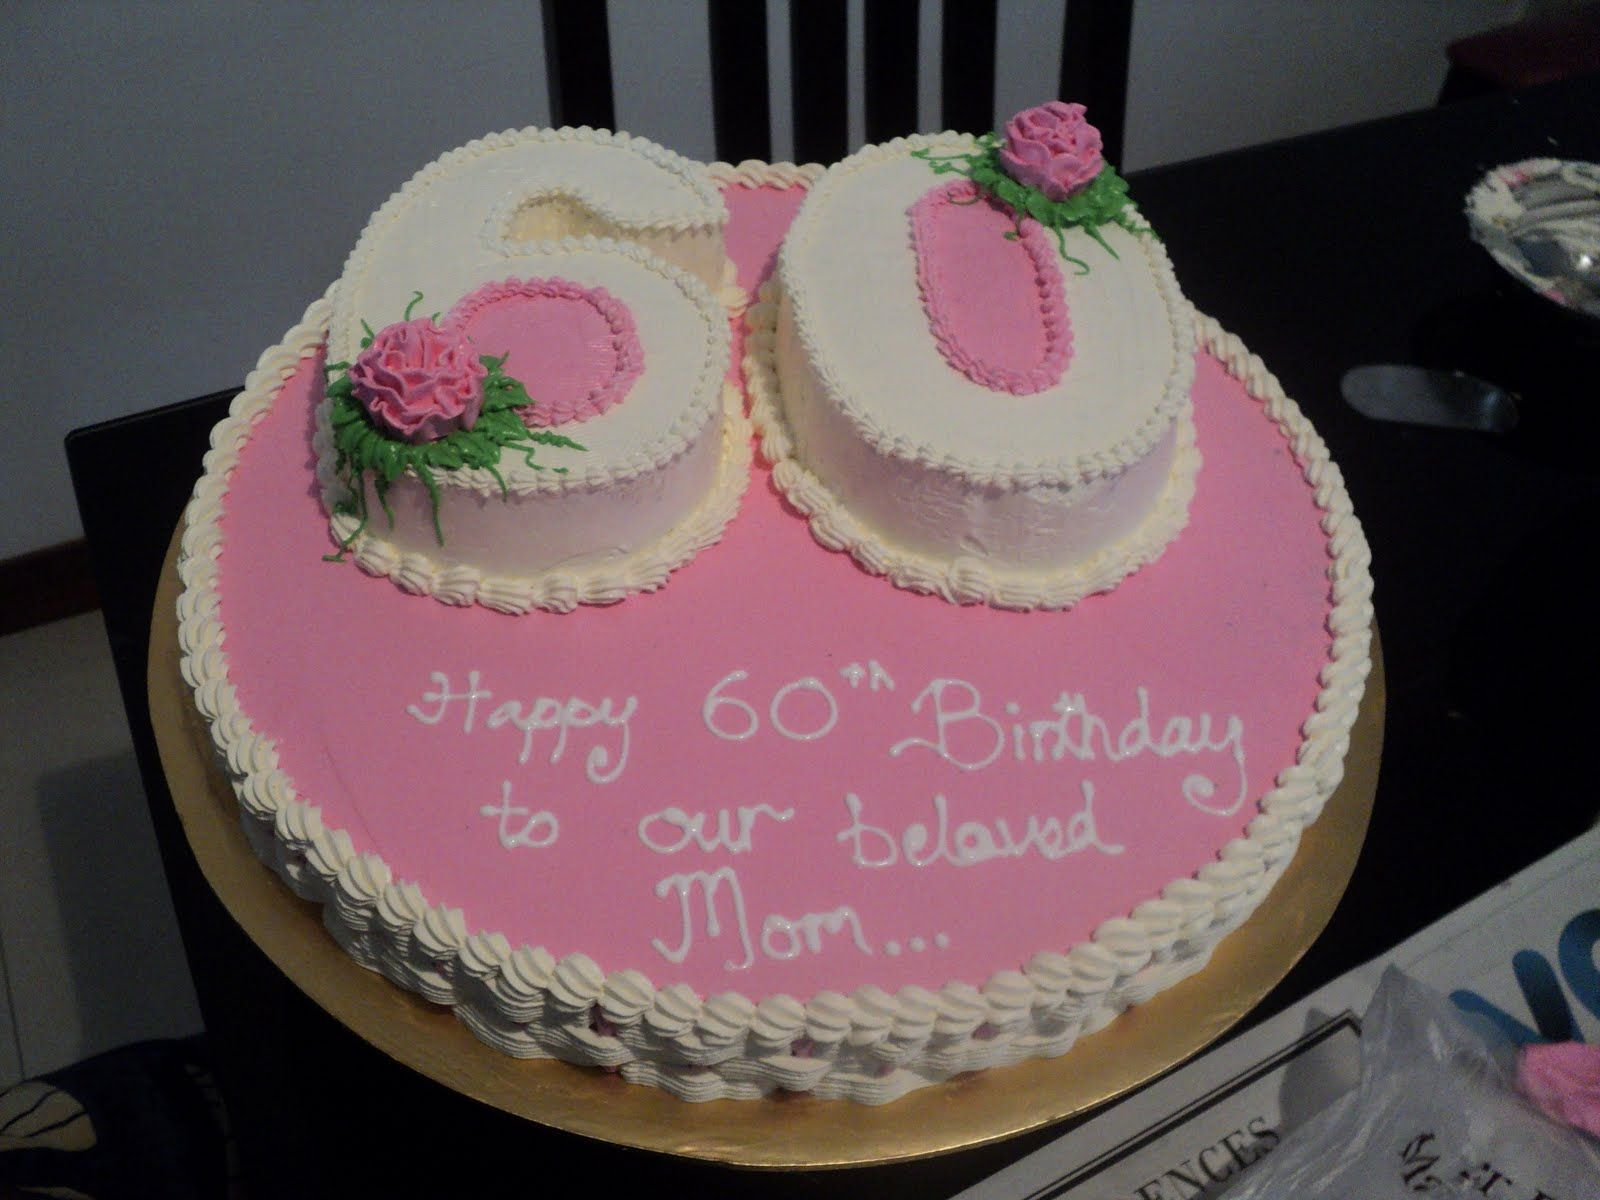 Birthday cake pictures 60th weight 5kg cakes for 60th birthday cake decoration